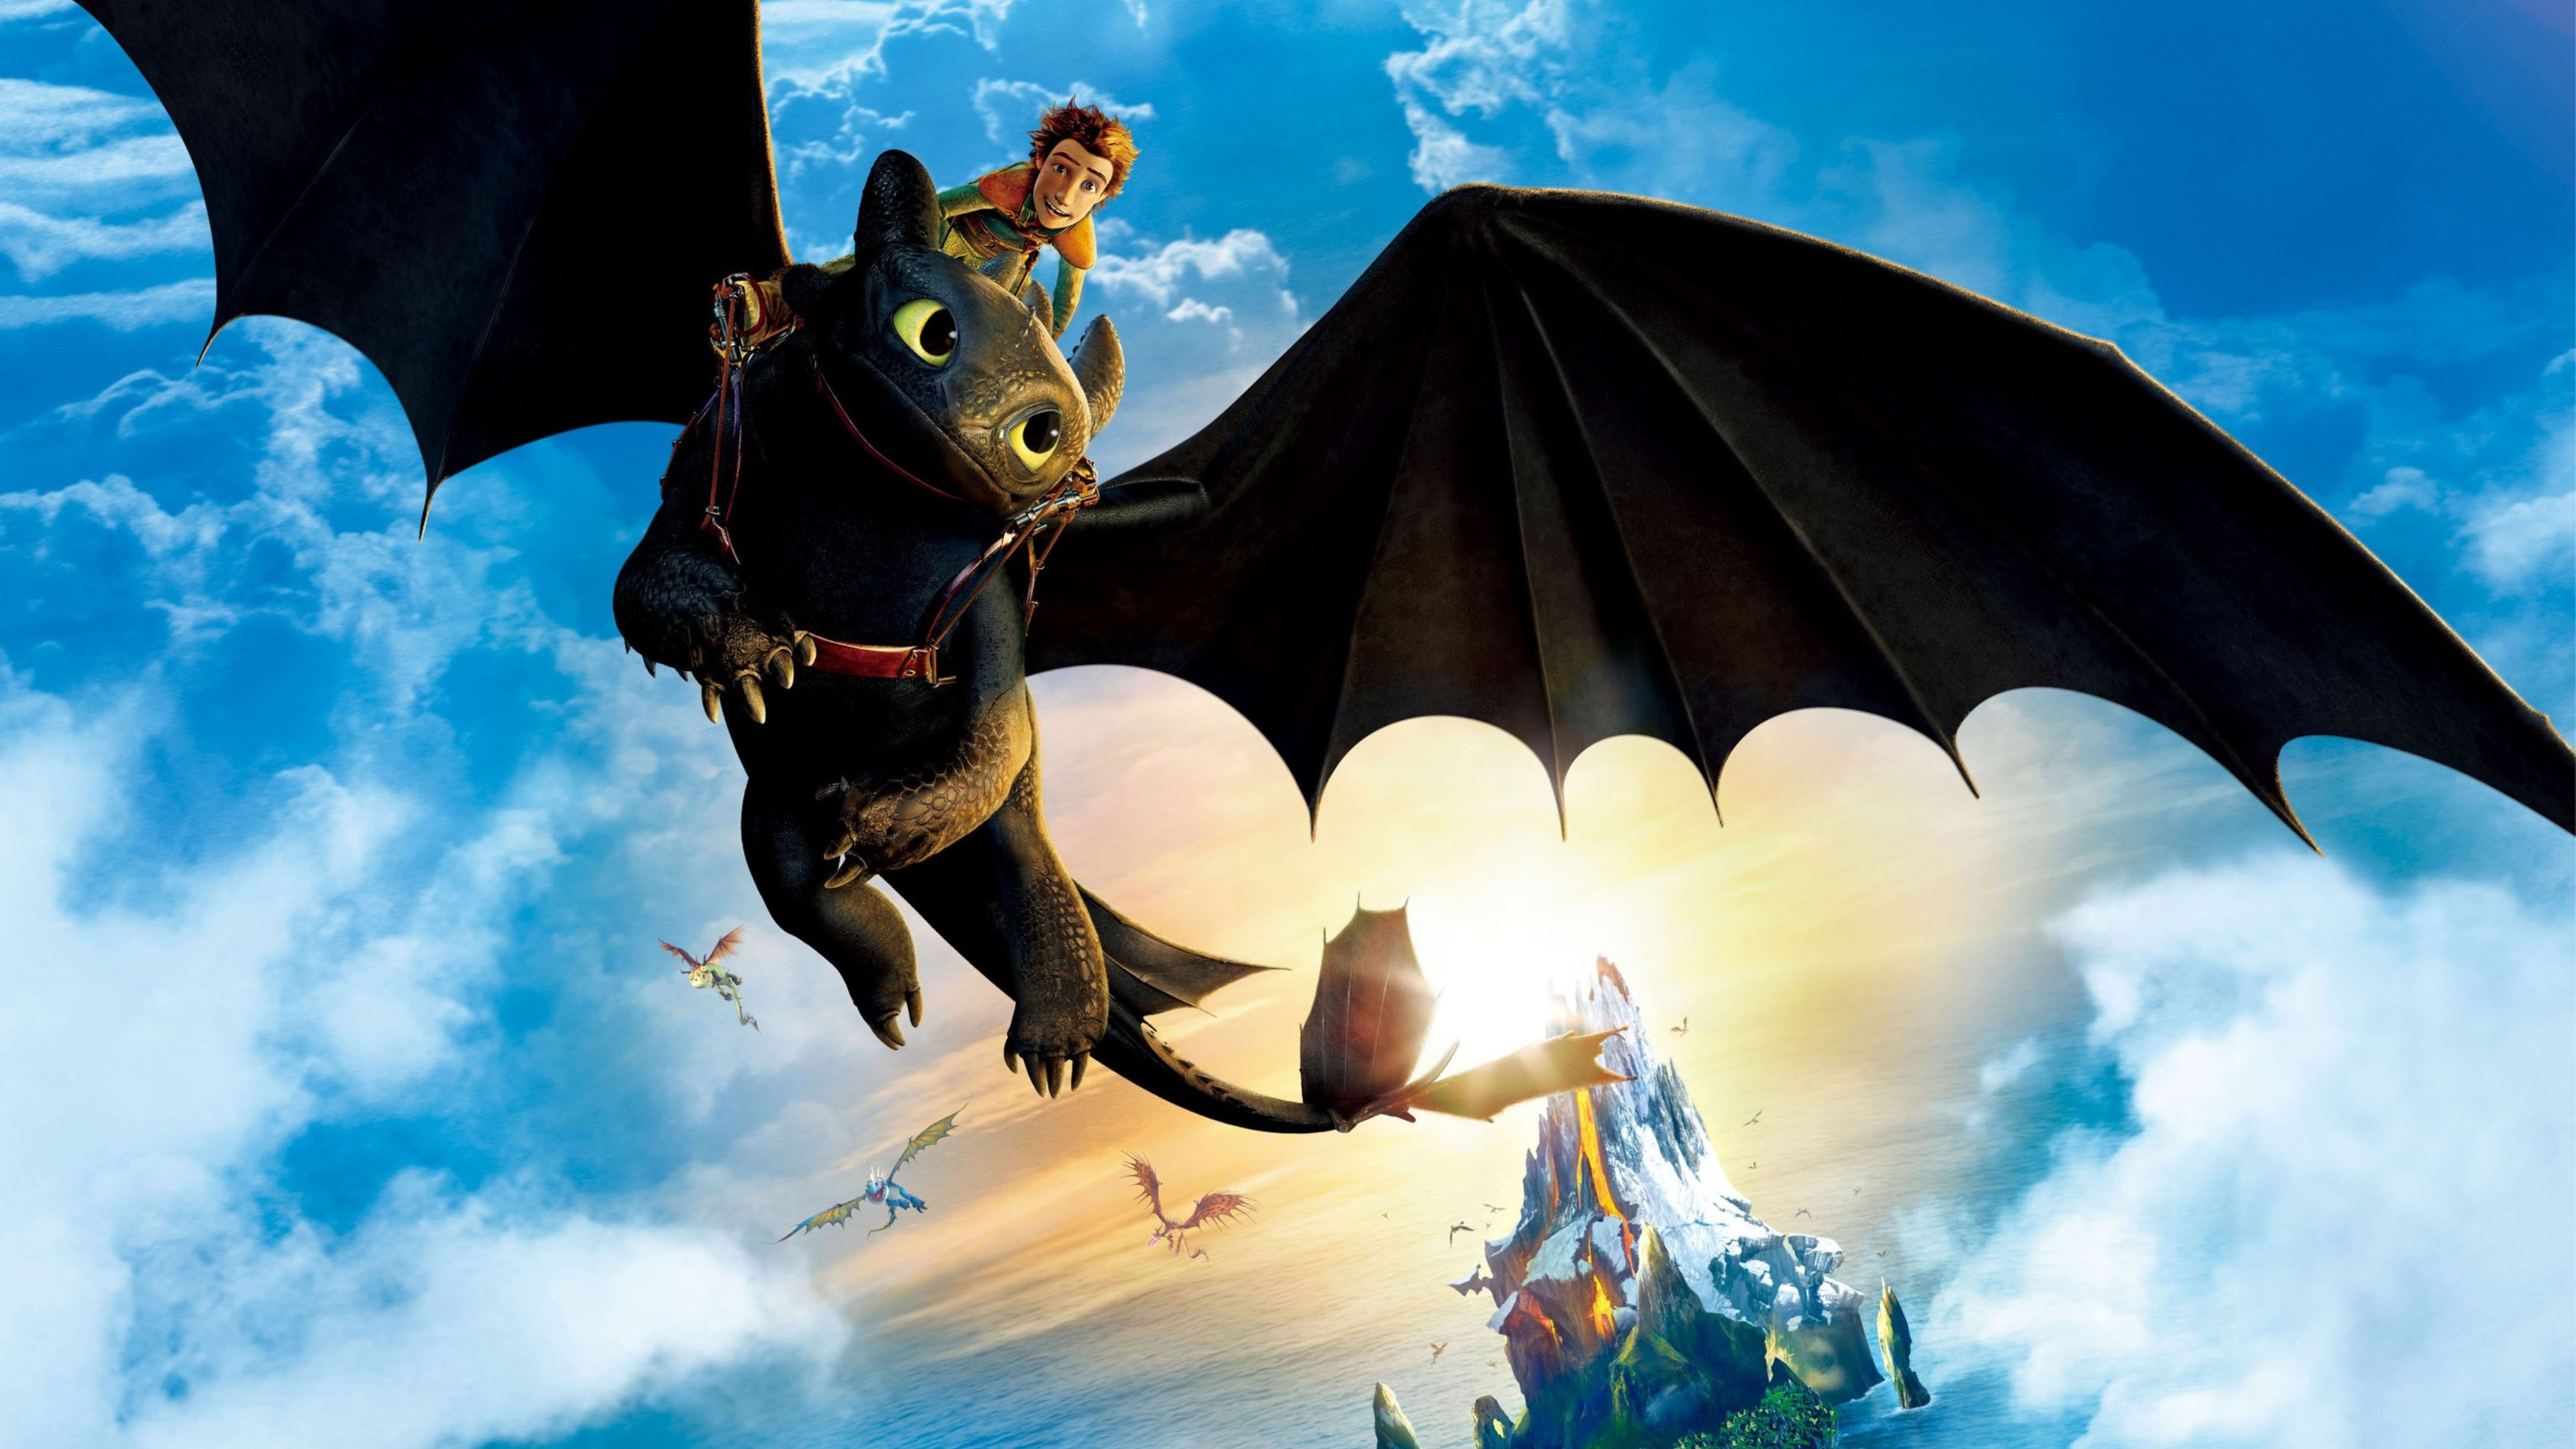 How To Train Your Dragon Hd Wallpaper 3840x2160 Gludy